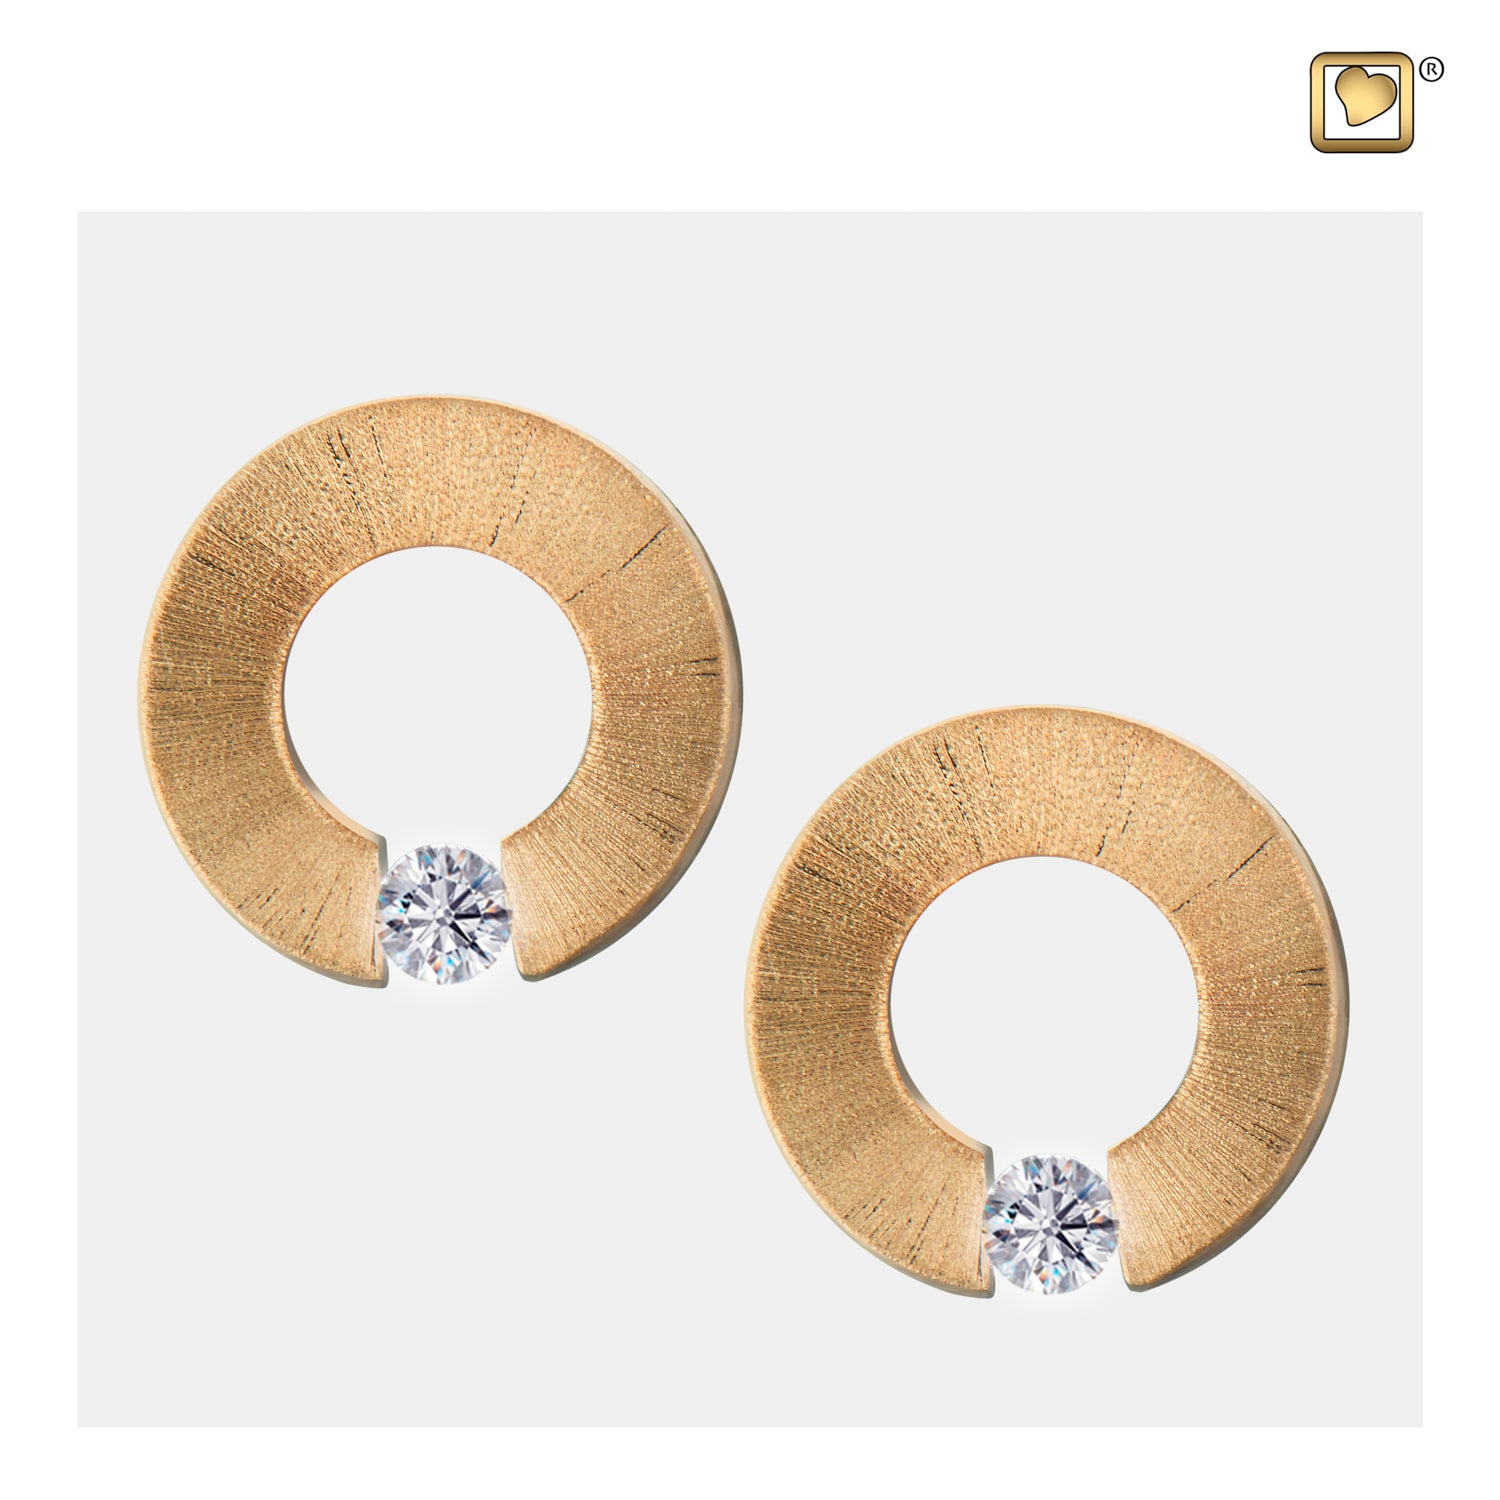 Sterling Silver Stud Earrings Omega Gold Vermeil Two Tone with Clear Crystal Cremation Jewelry